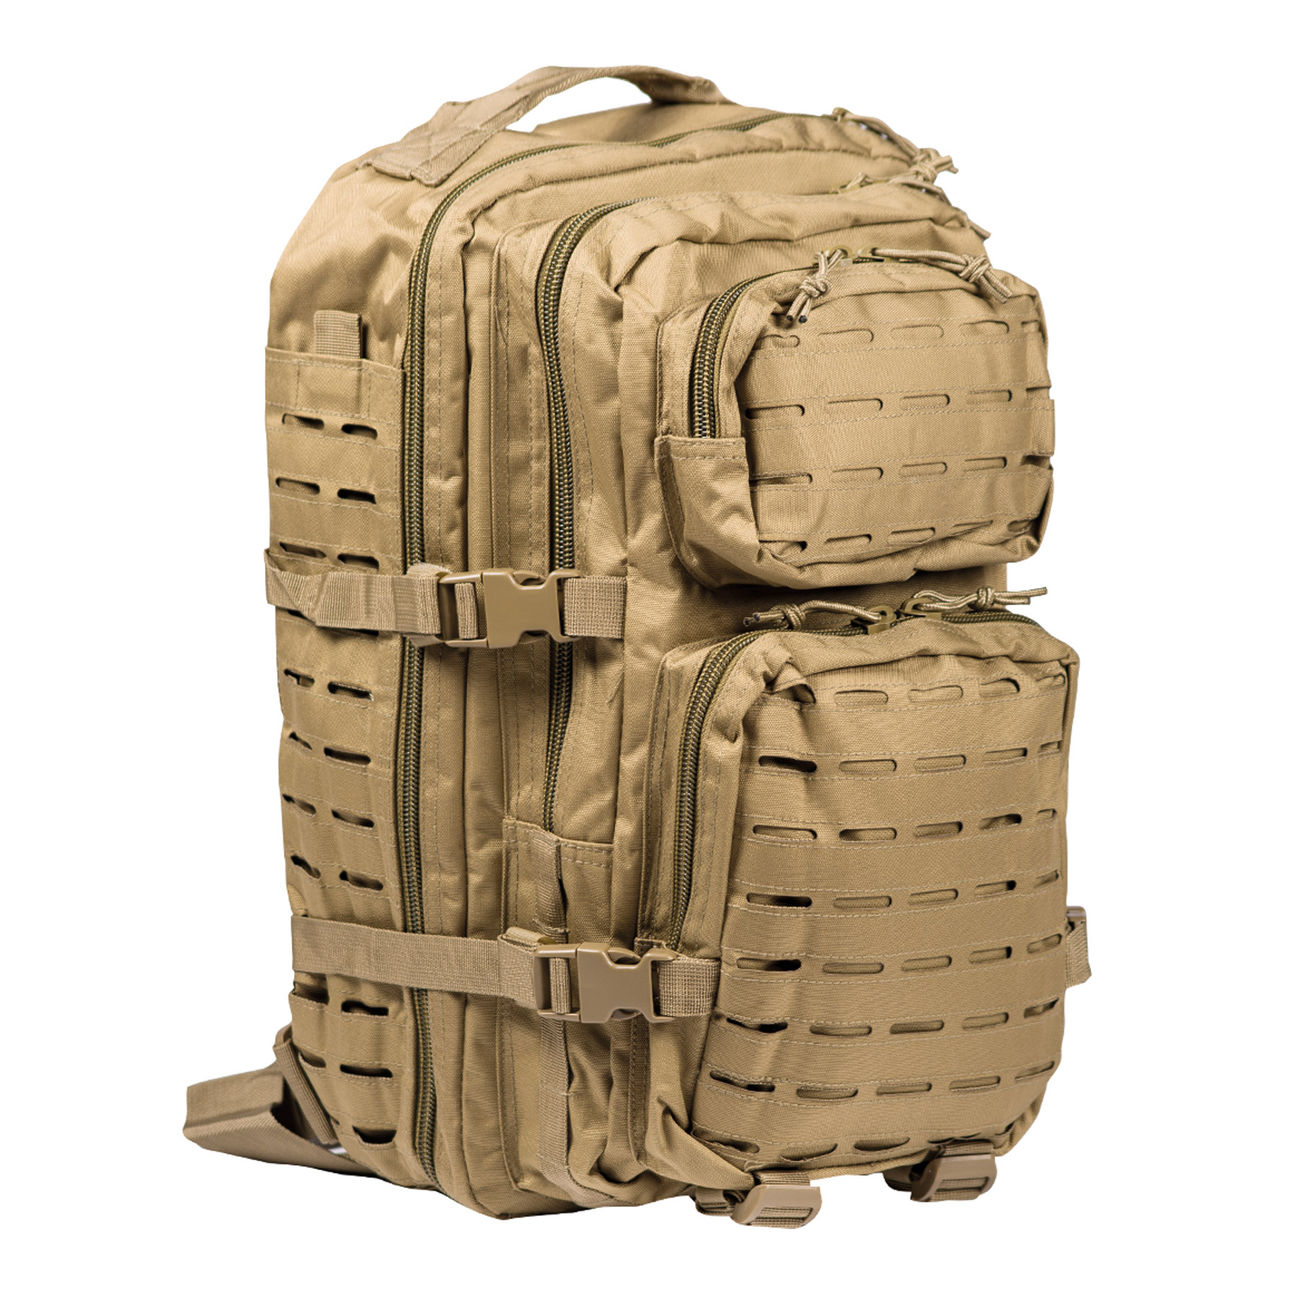 Mil-Tec Rucksack US Assault Pack Laser Cut large 36L coyote 0